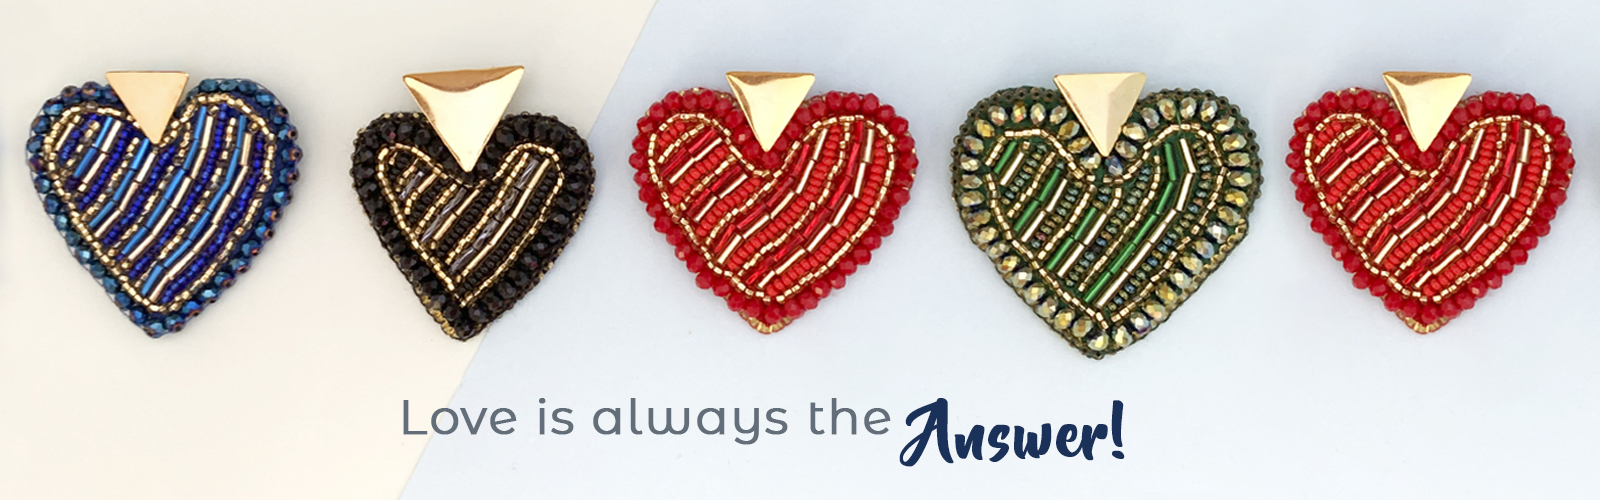 Banner_D'Alma_Love is the Answer_1600 x 500 px